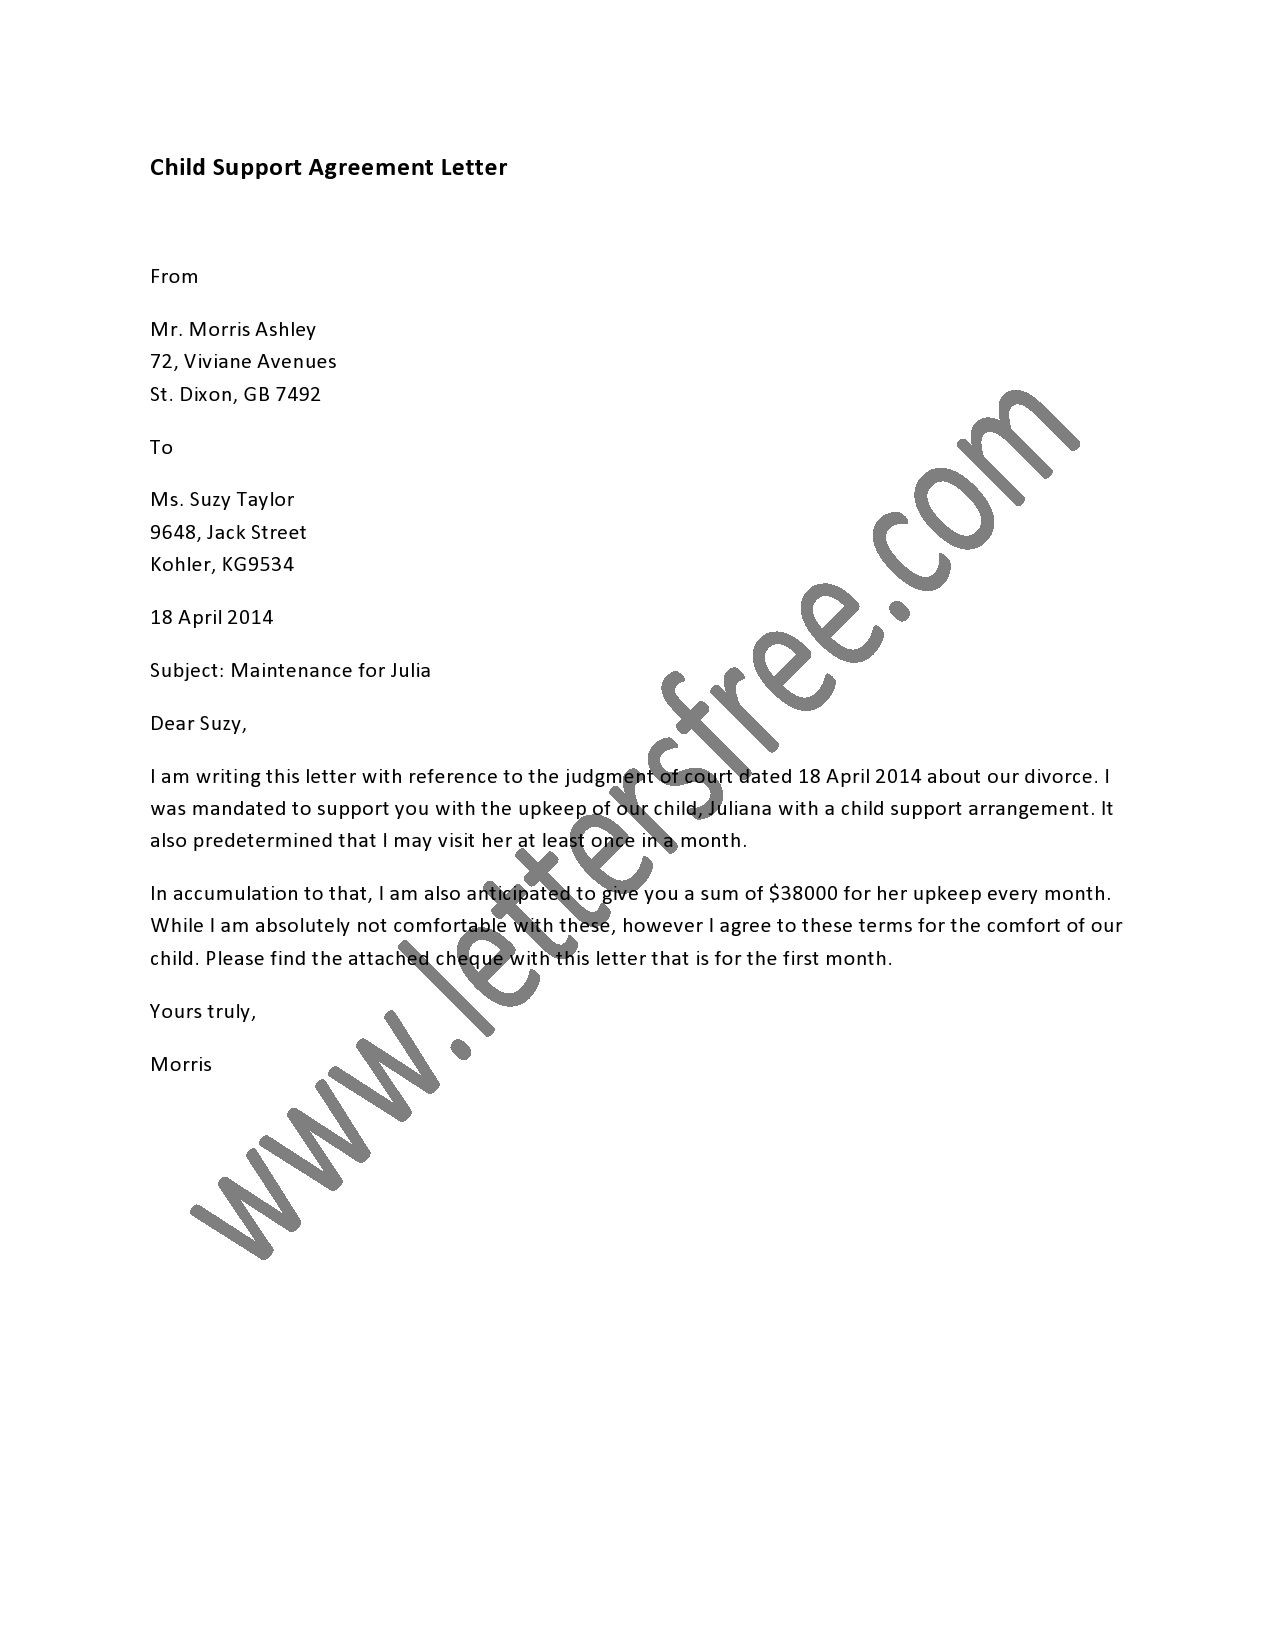 Child Support Agreement Letter Sample Letters